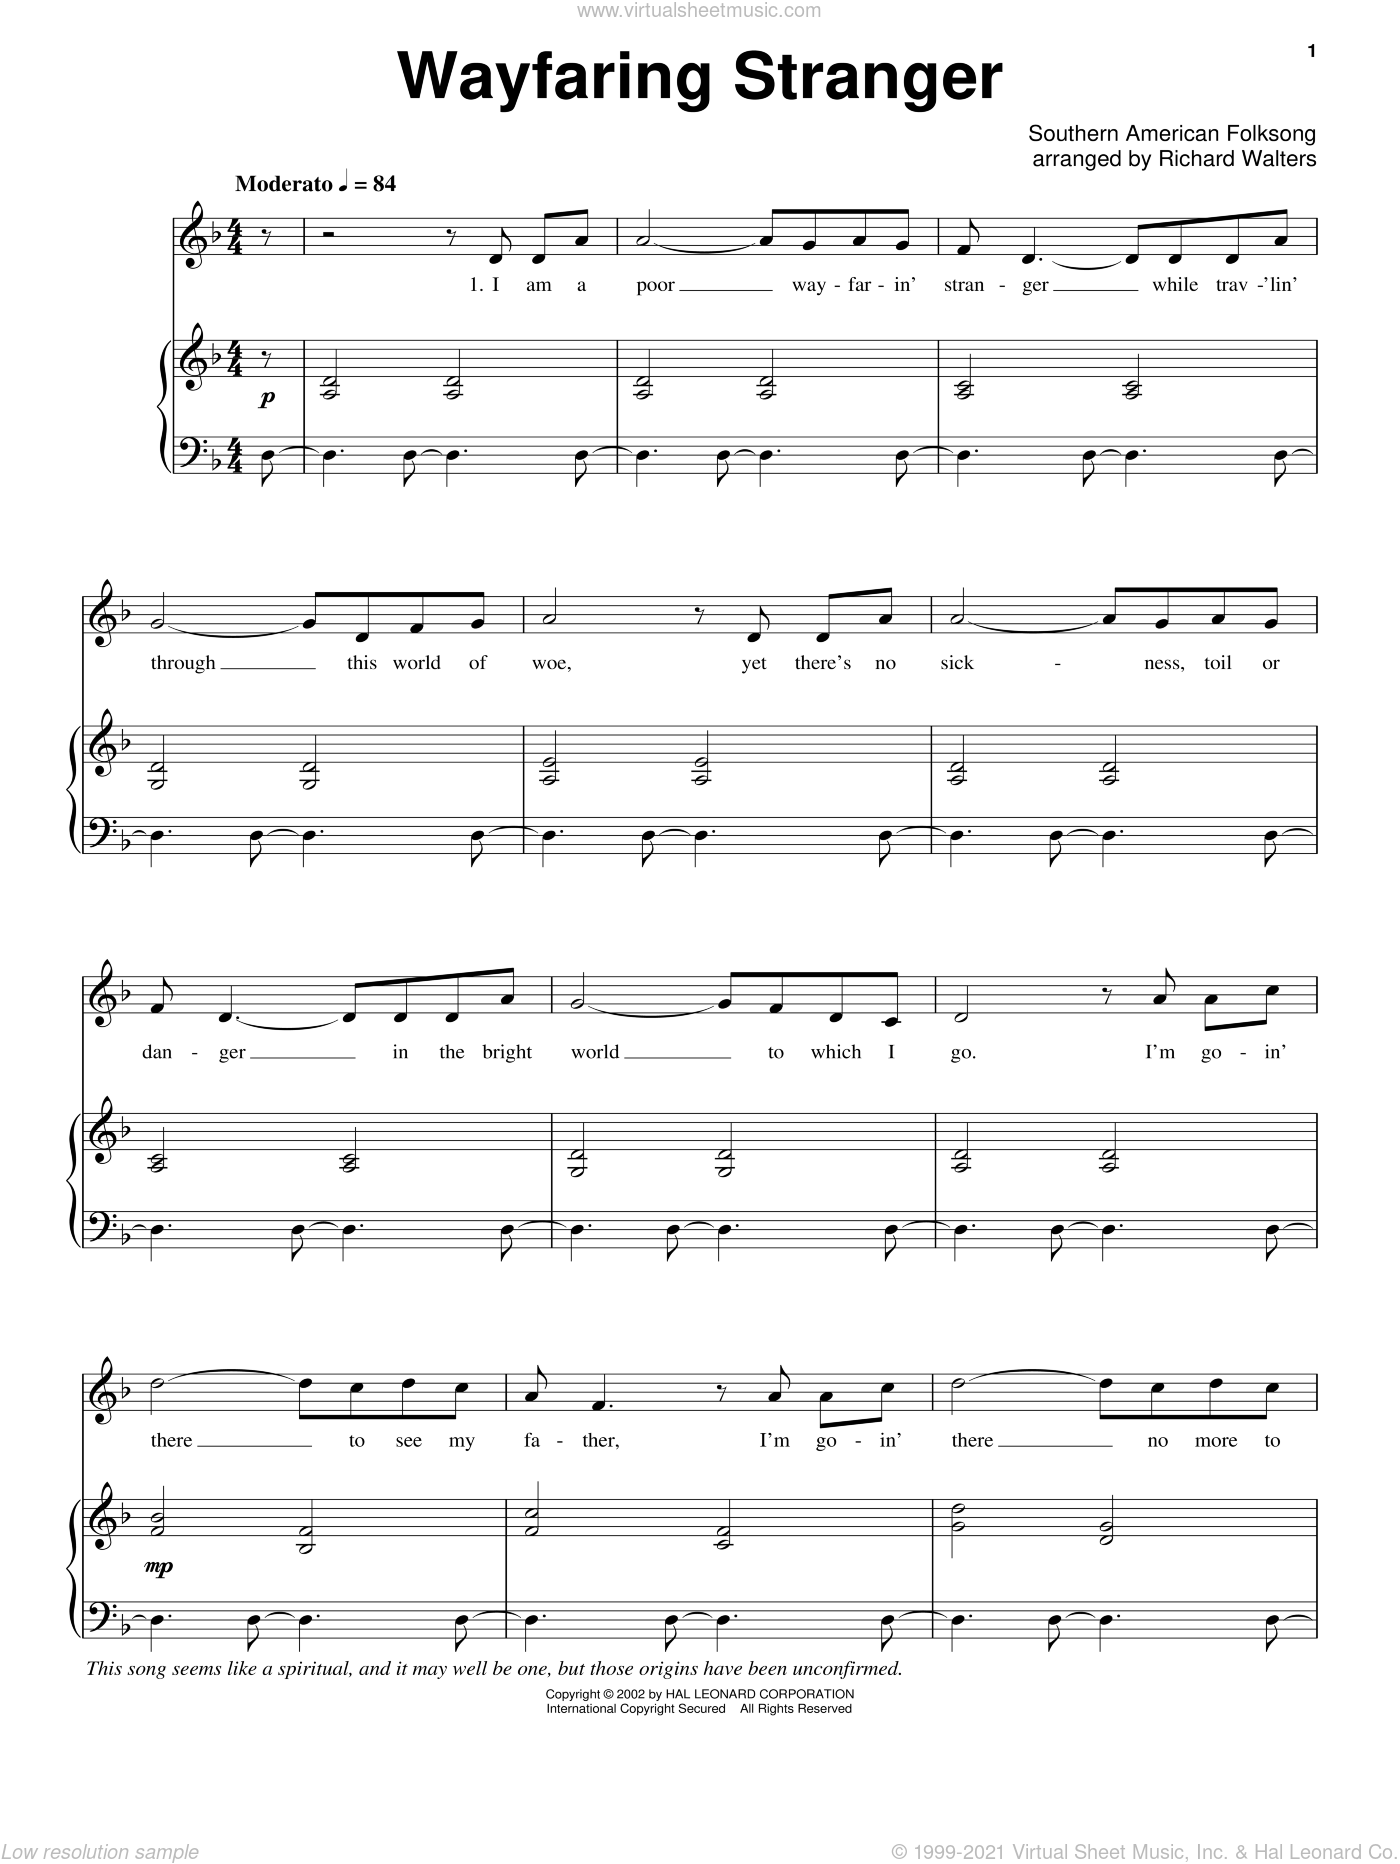 Wayfaring Stranger sheet music for voice, piano or guitar. Score Image Preview.